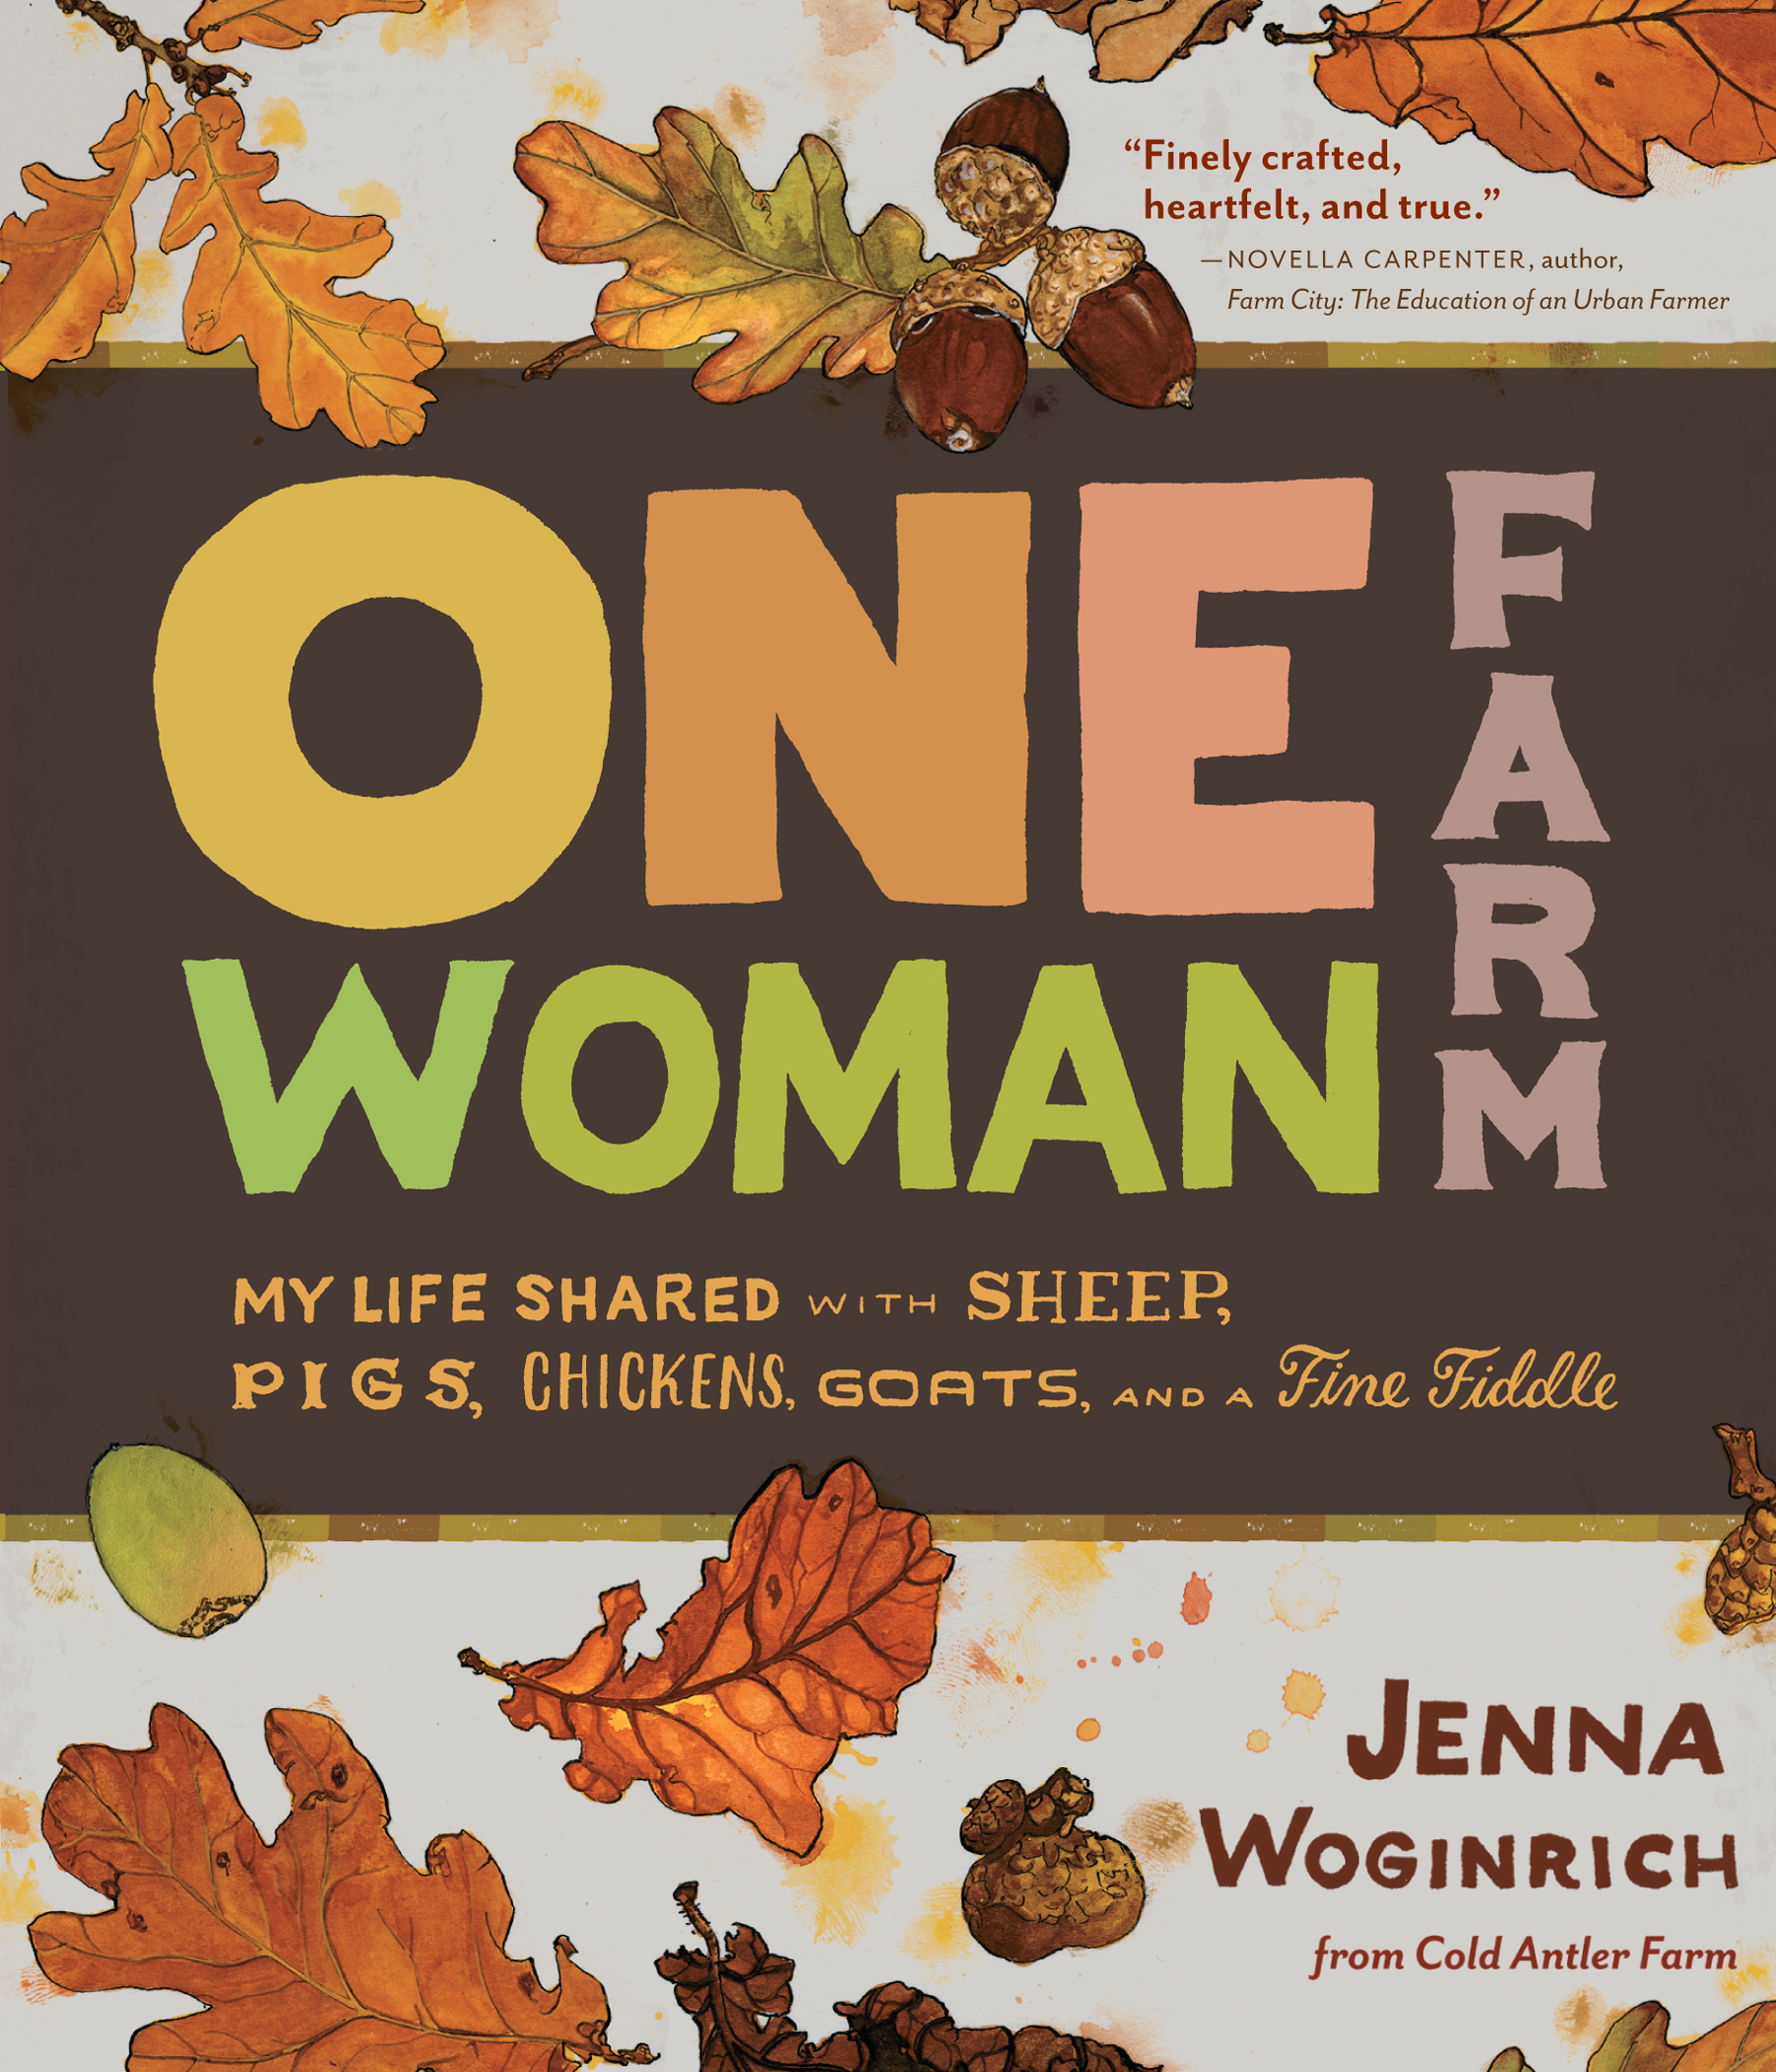 One-Woman Farm My Life Shared with Sheep, Pigs, Chickens, Goats, and a Fine Fiddle - Jenna Woginrich